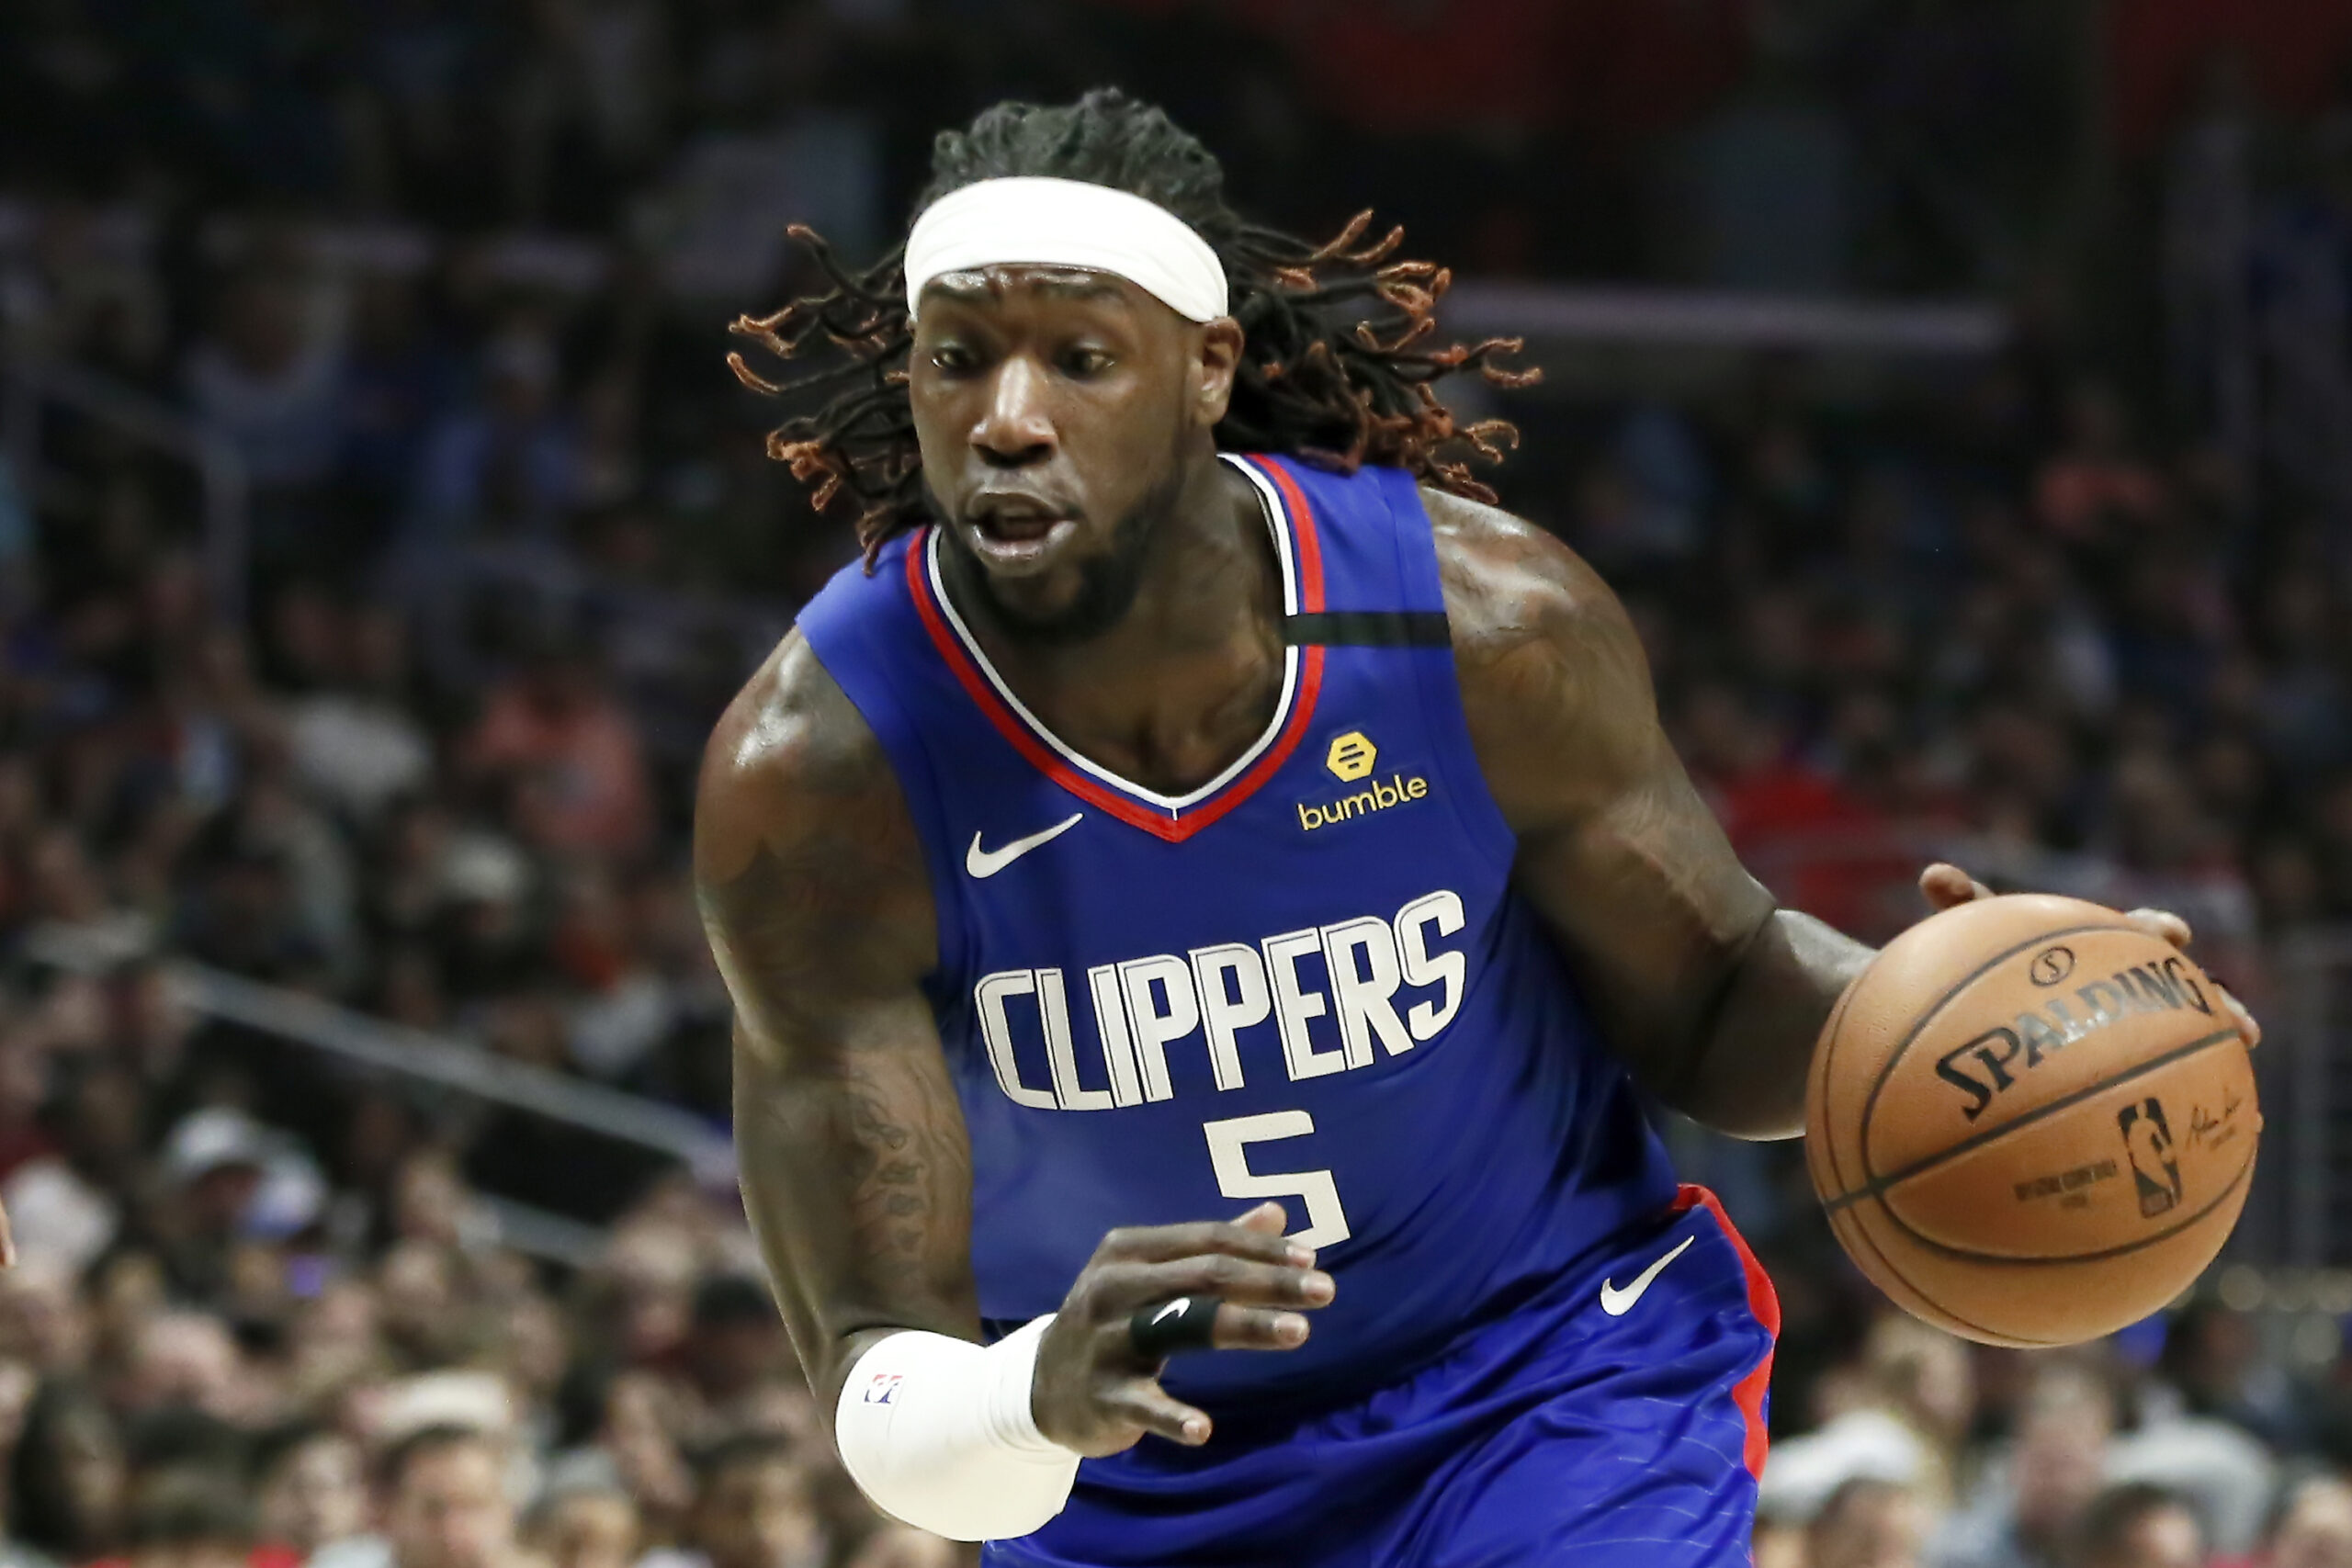 Montrezl Harrell leaves Clippers to sign with Lakers